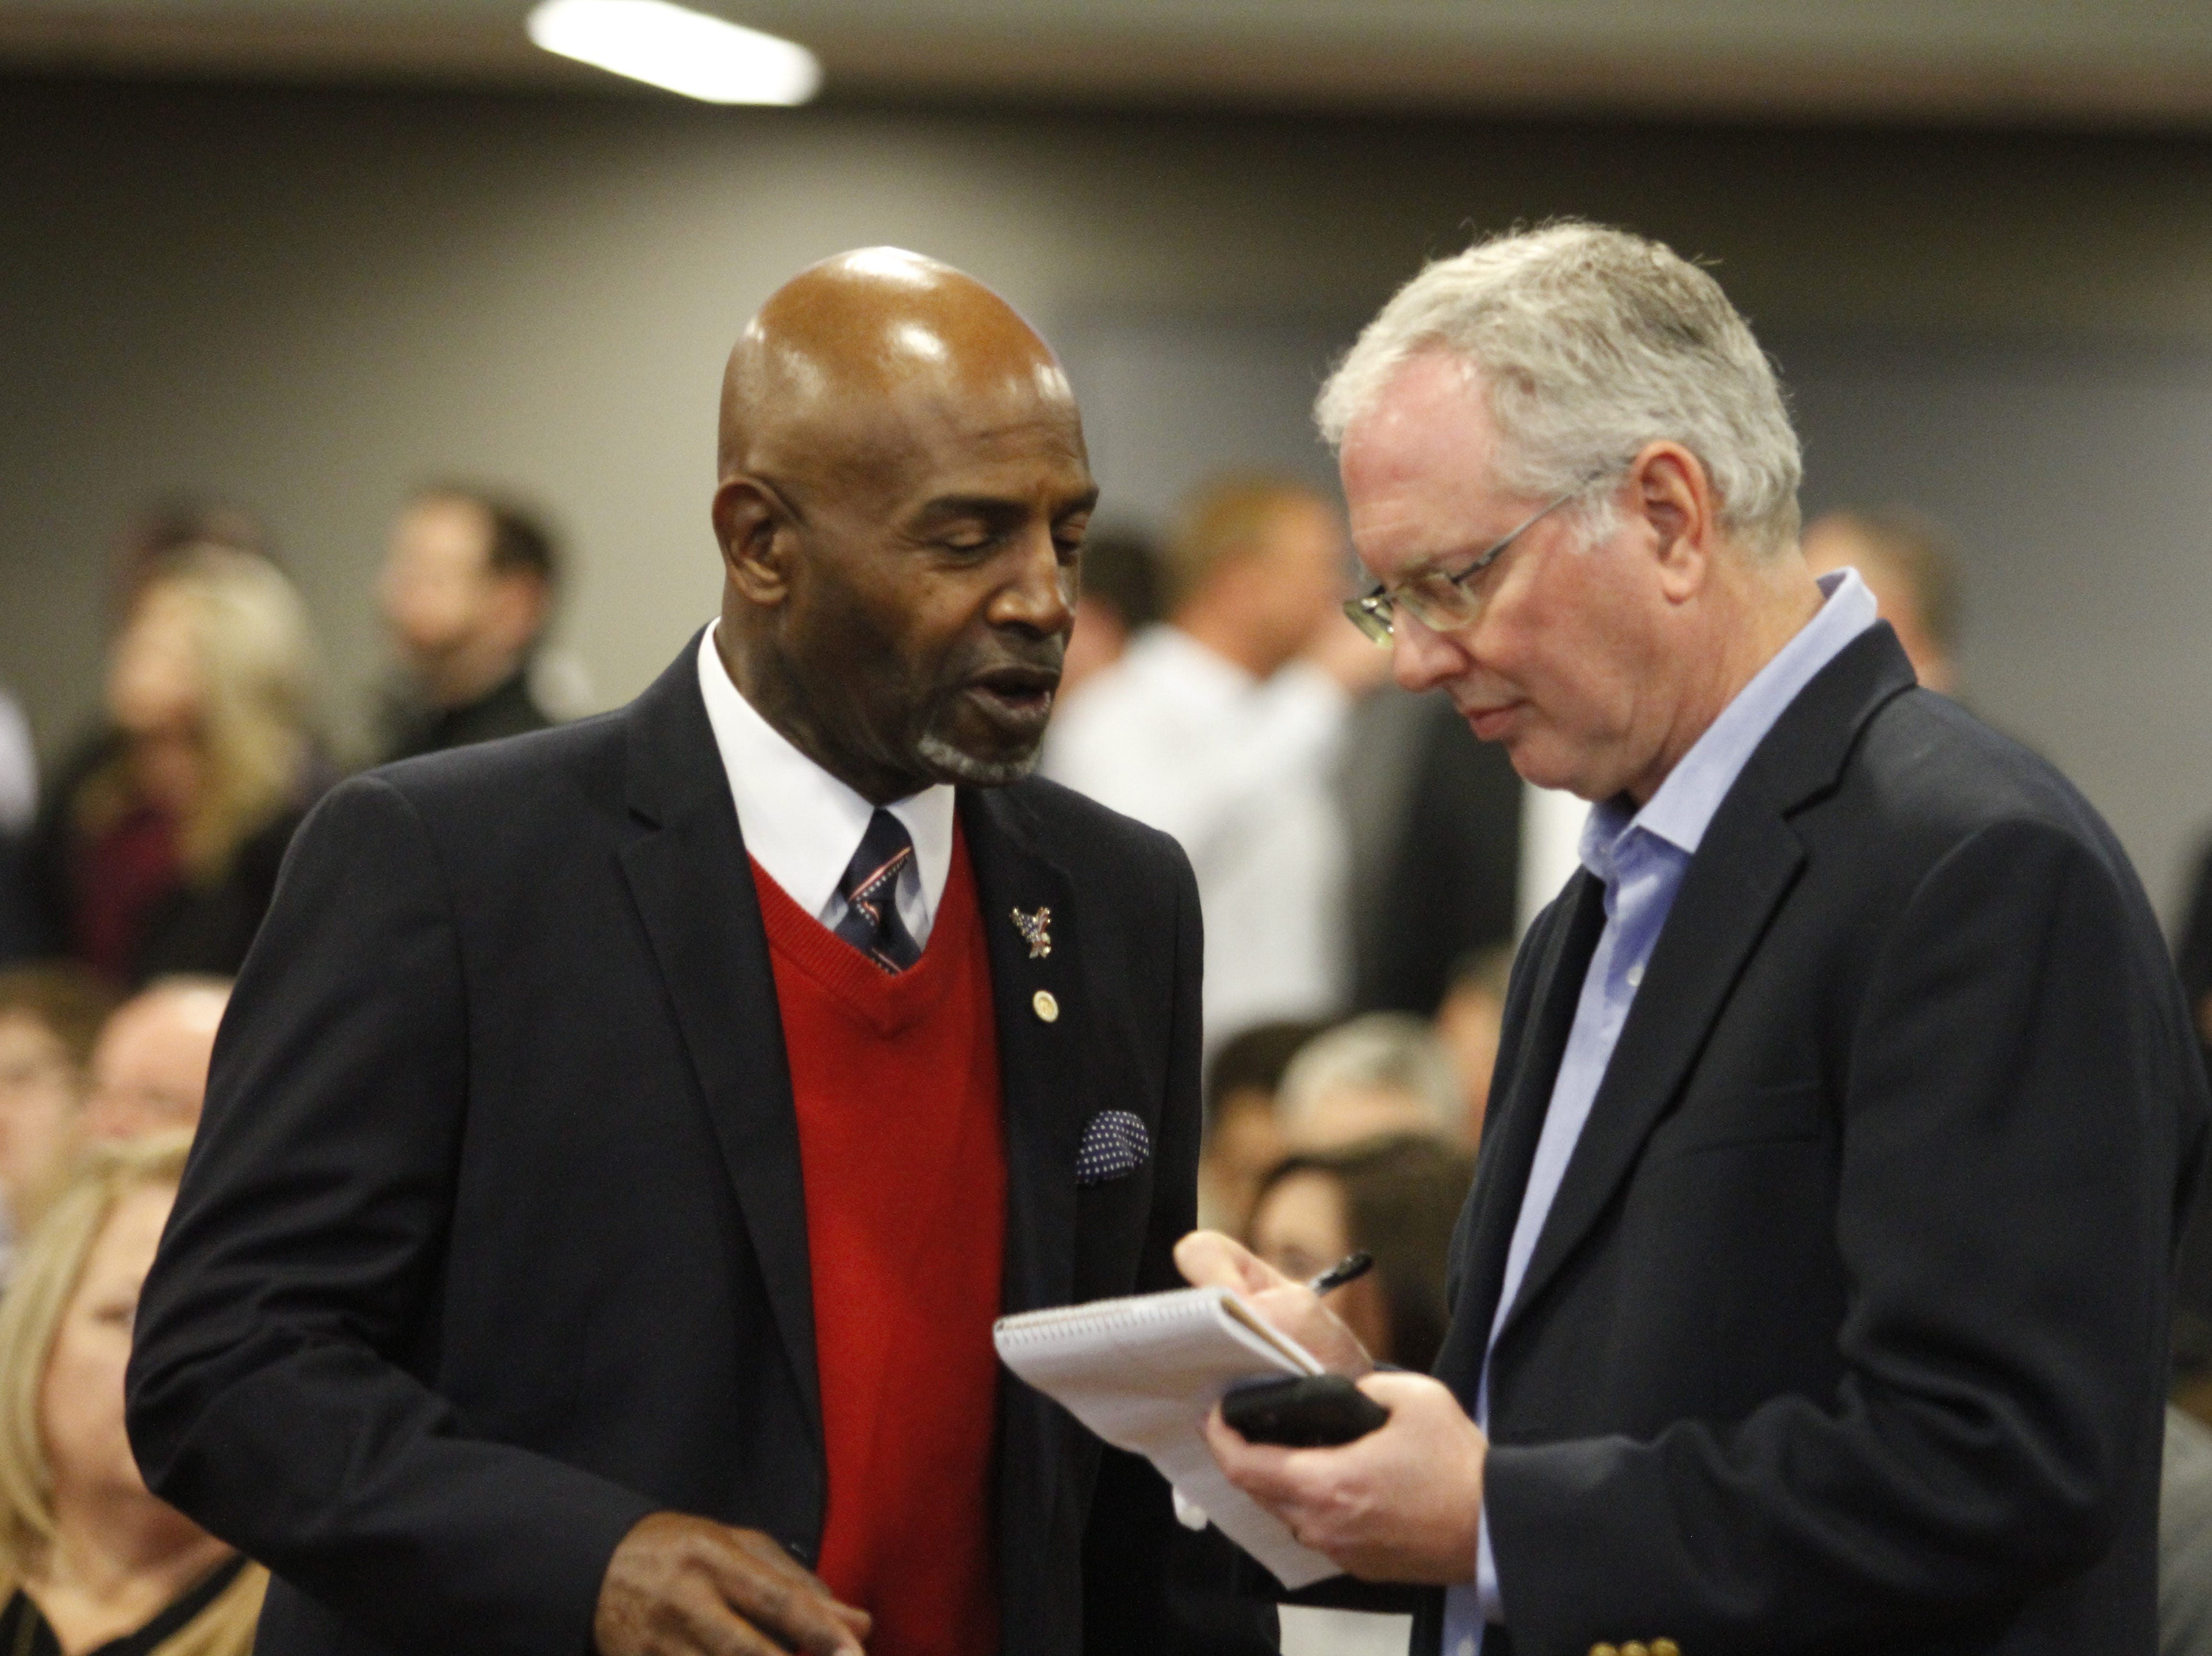 The official swearing-in ceremony for Clarksville Mayor Joe Pitts and the City Council was held Wednesday afternoon, Jan. 2, 2019, at the Wilma Rudolph Event Center.